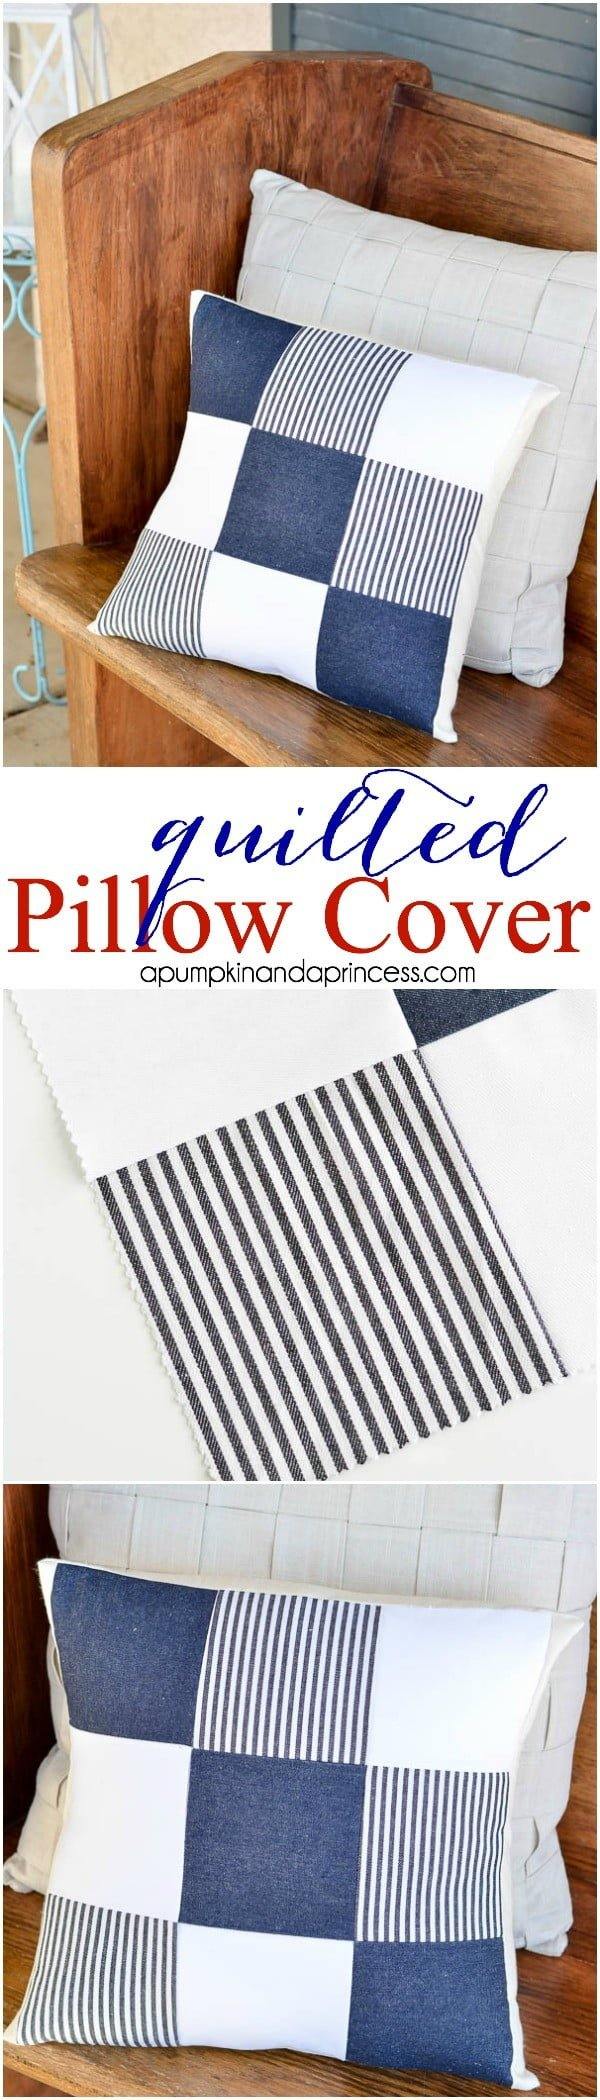 10 Insanely Easy DIY Pillow Cover Ideas - Make an easy DIY quilted pillow cover